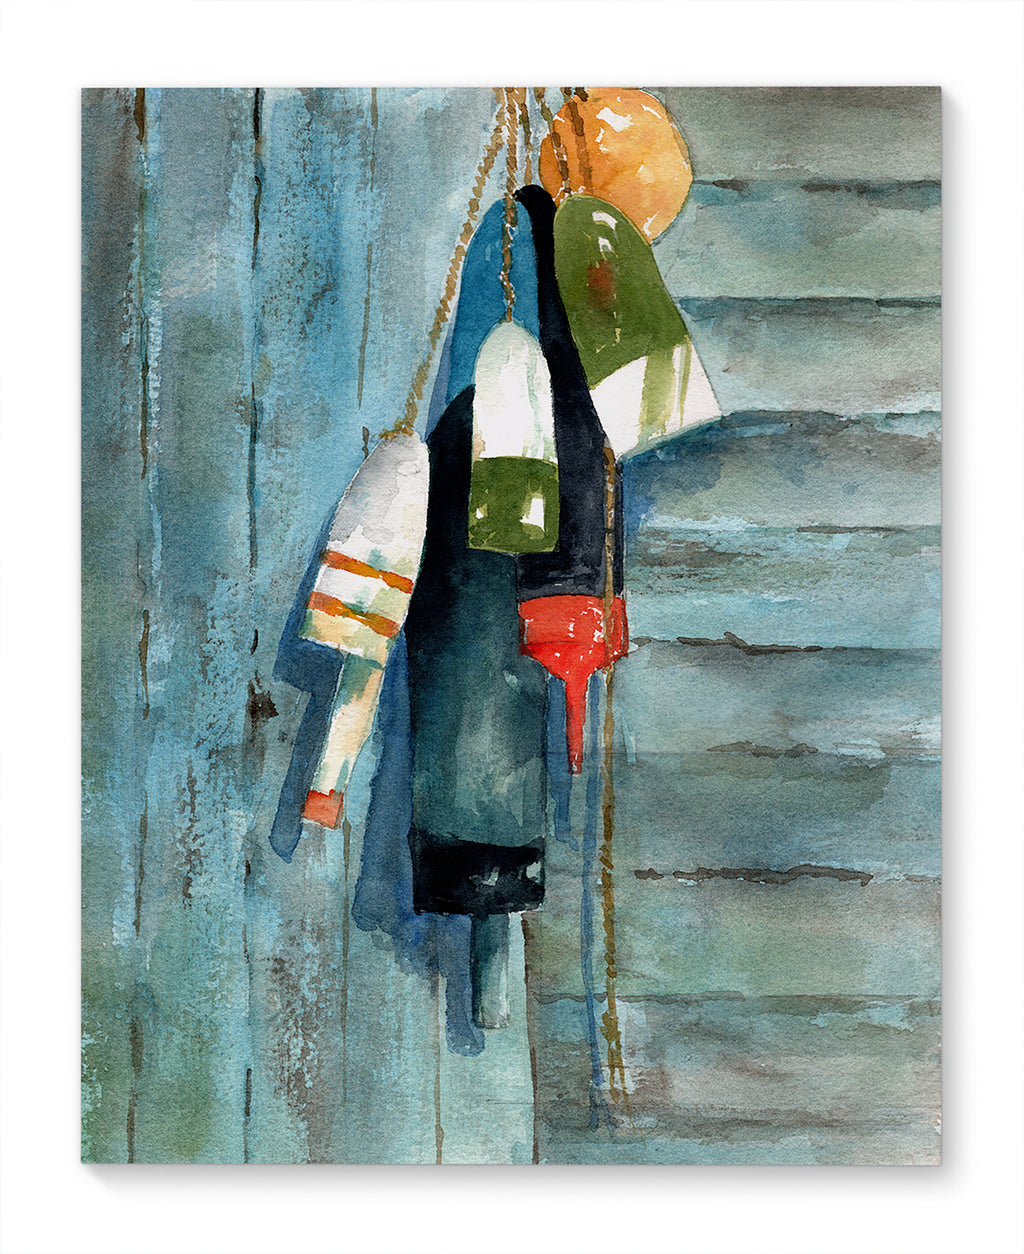 MAINE BUOYS Canvas Art By Jayne Conte